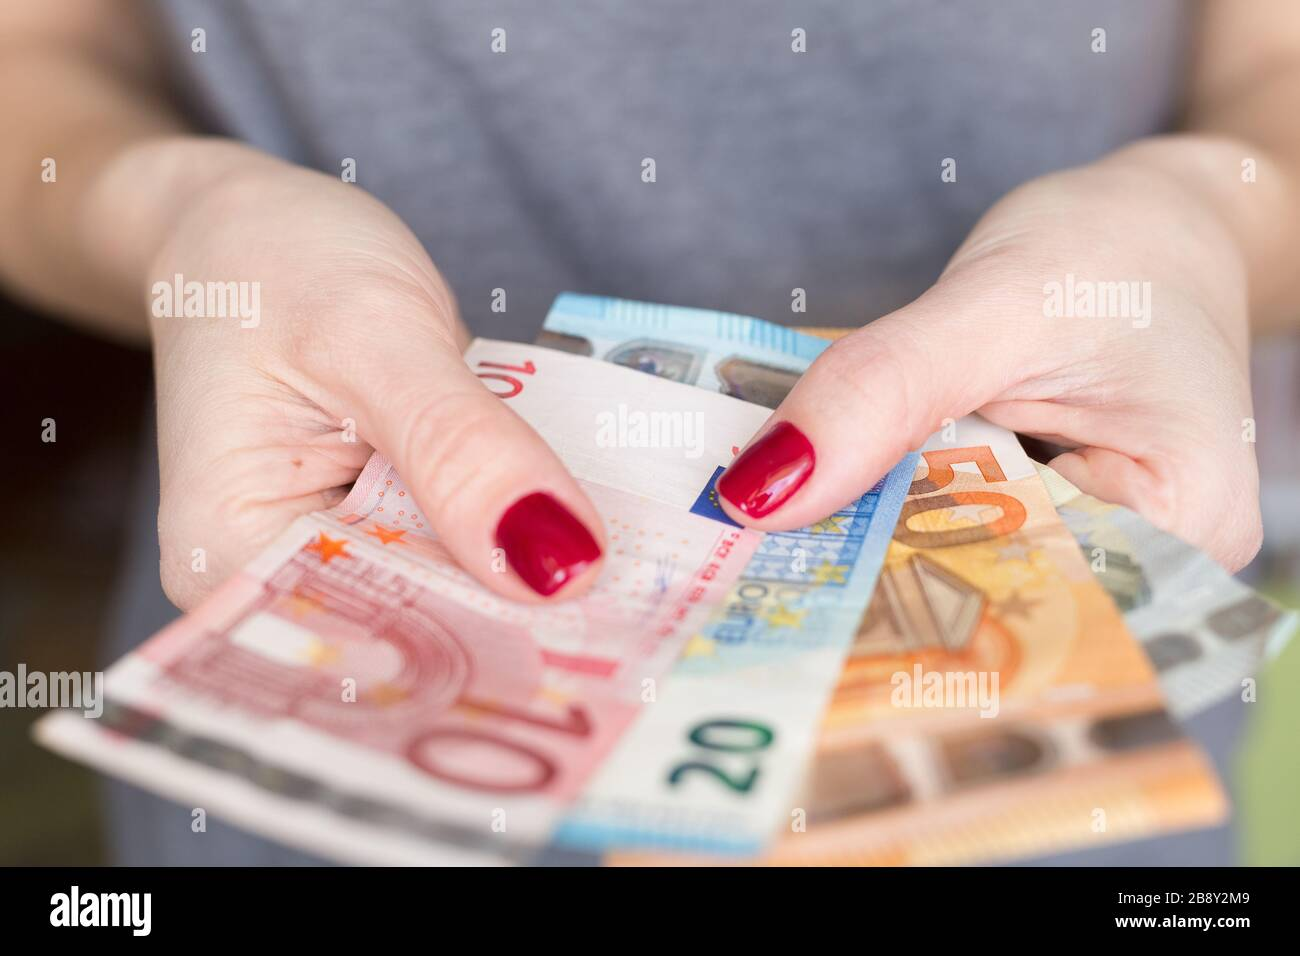 Euro banknotes. Money in a woman's hand. Lack of money. Unemployed. unemployment. Financial crisis. Credit. Loan. Stock Photo